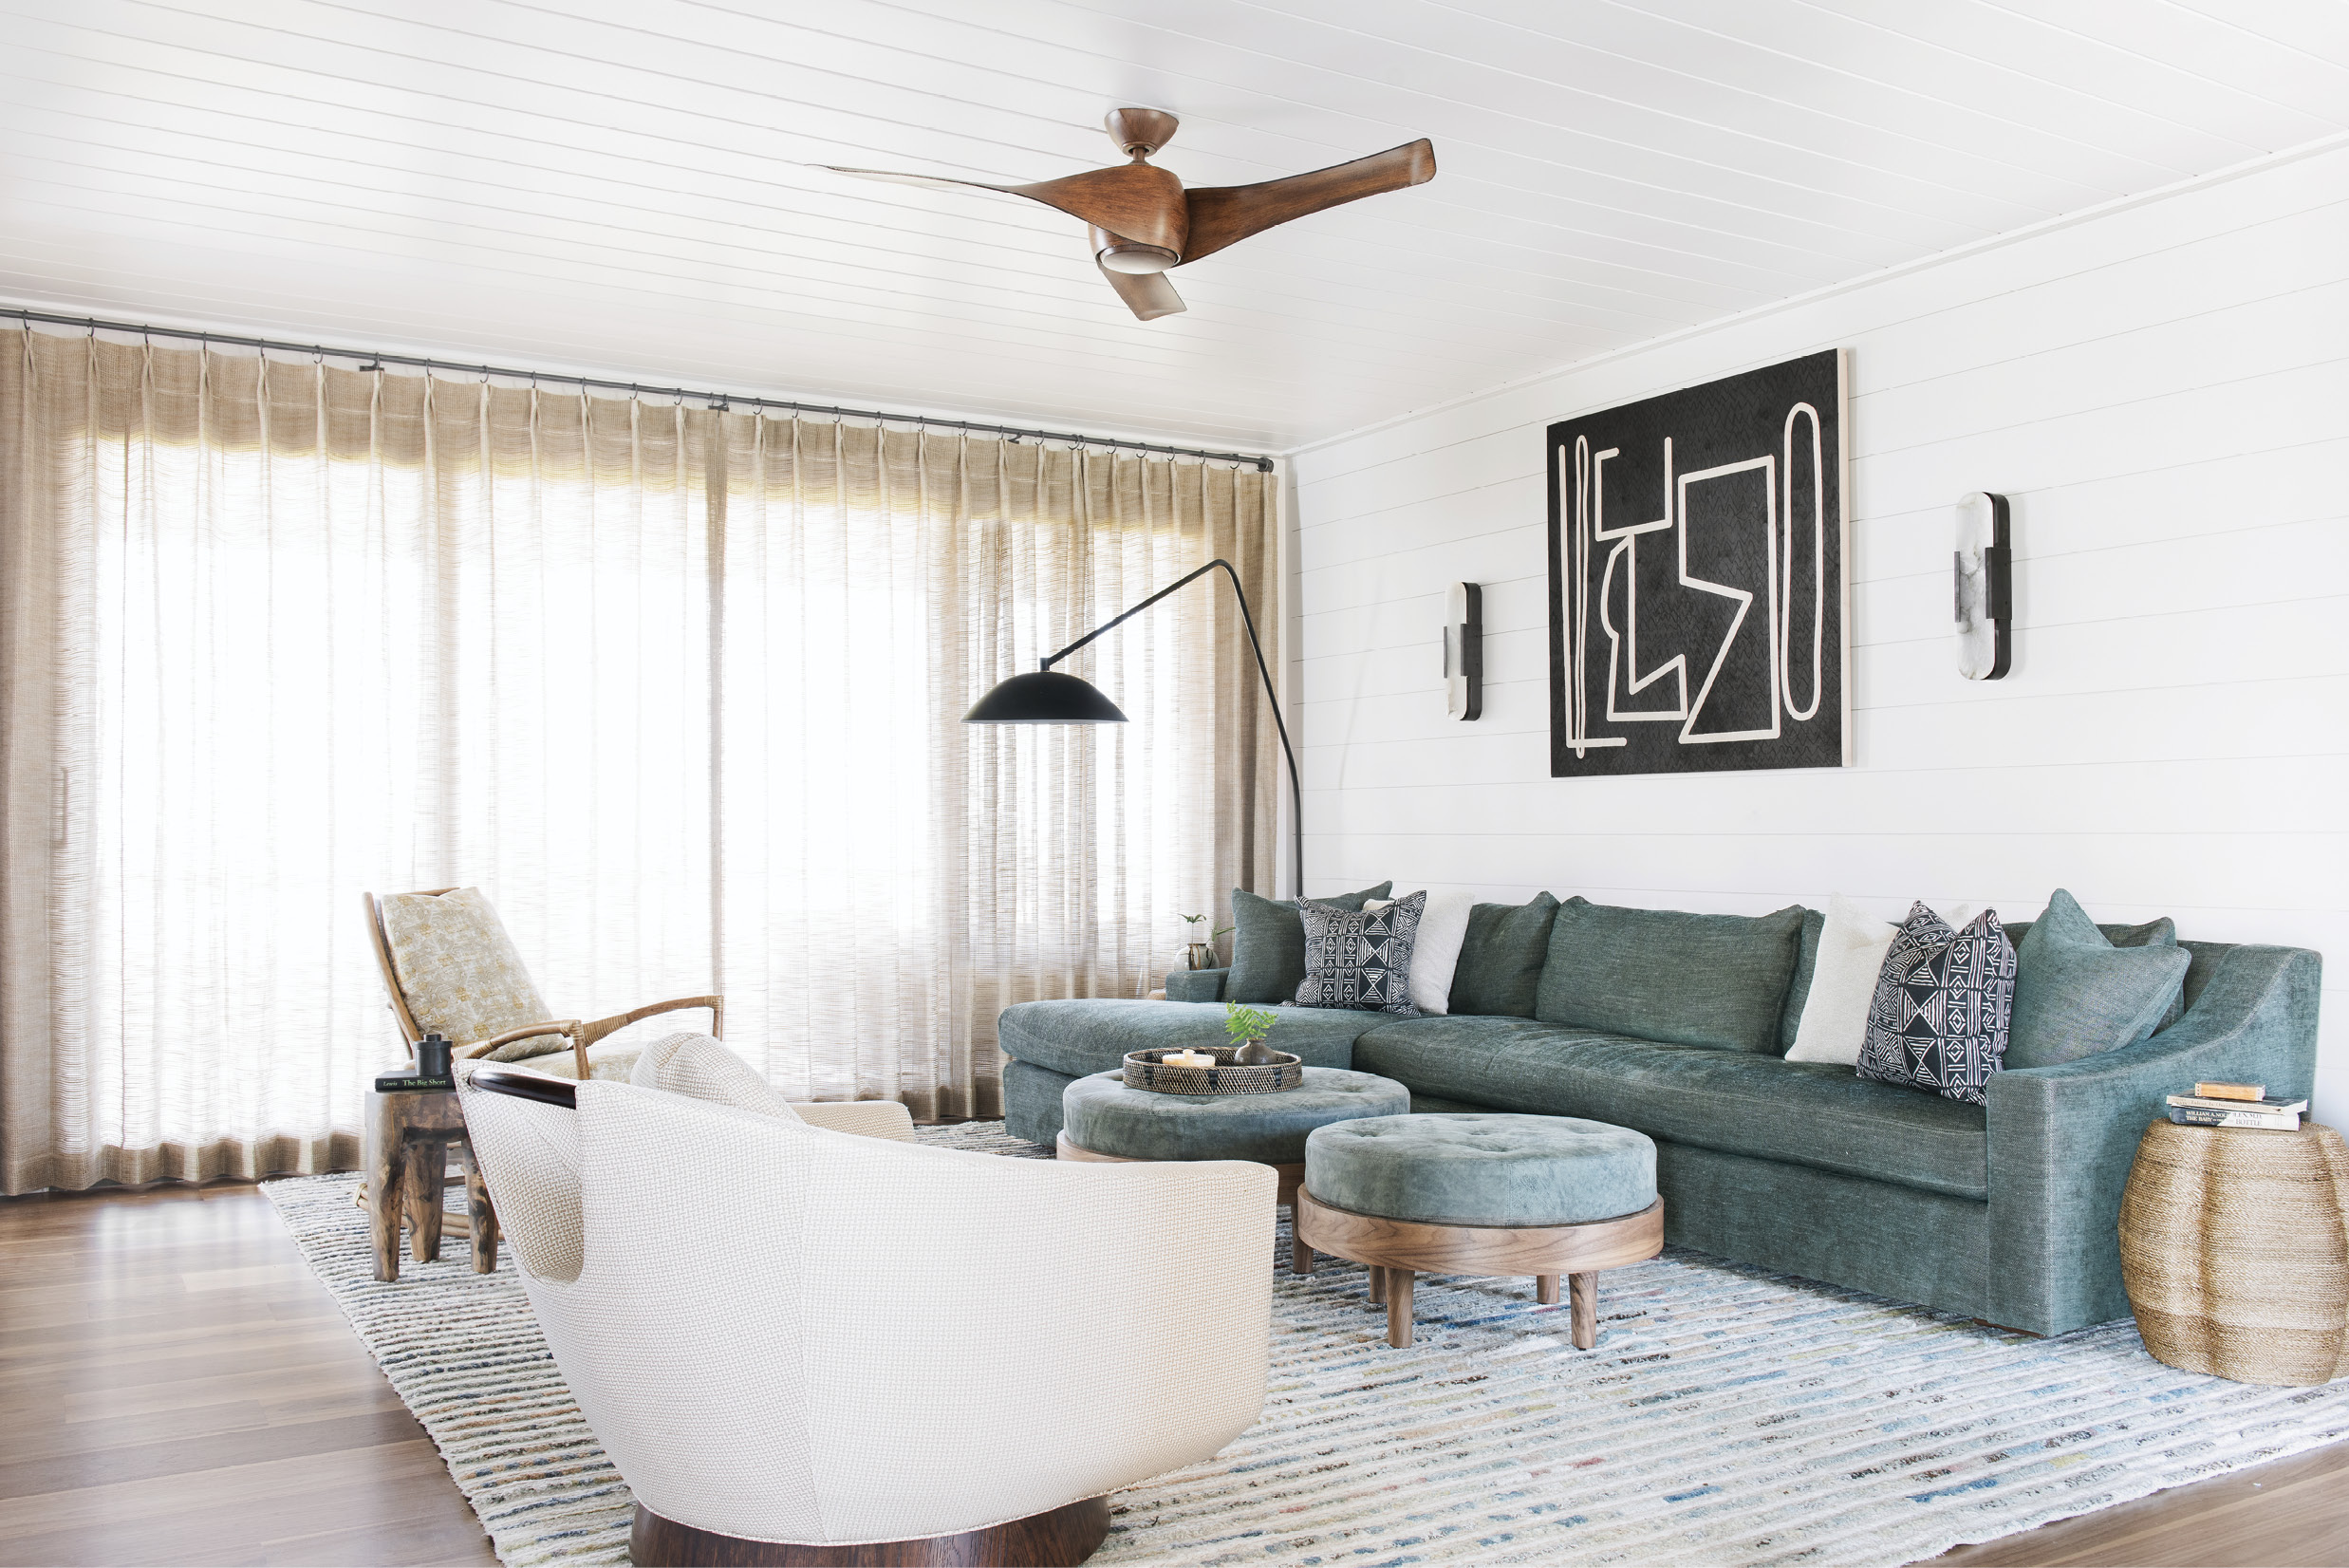 Cool Comfort: In the first-floor family room, an Amadi Carpets rug ties together an eclectic collection of furniture dominated by a Verellen sectional with matching ottomans. Kelly Wearstler for Visual Comfort sconces frame a black-and-white geometric painting by Brian Coleman from The George Gallery.